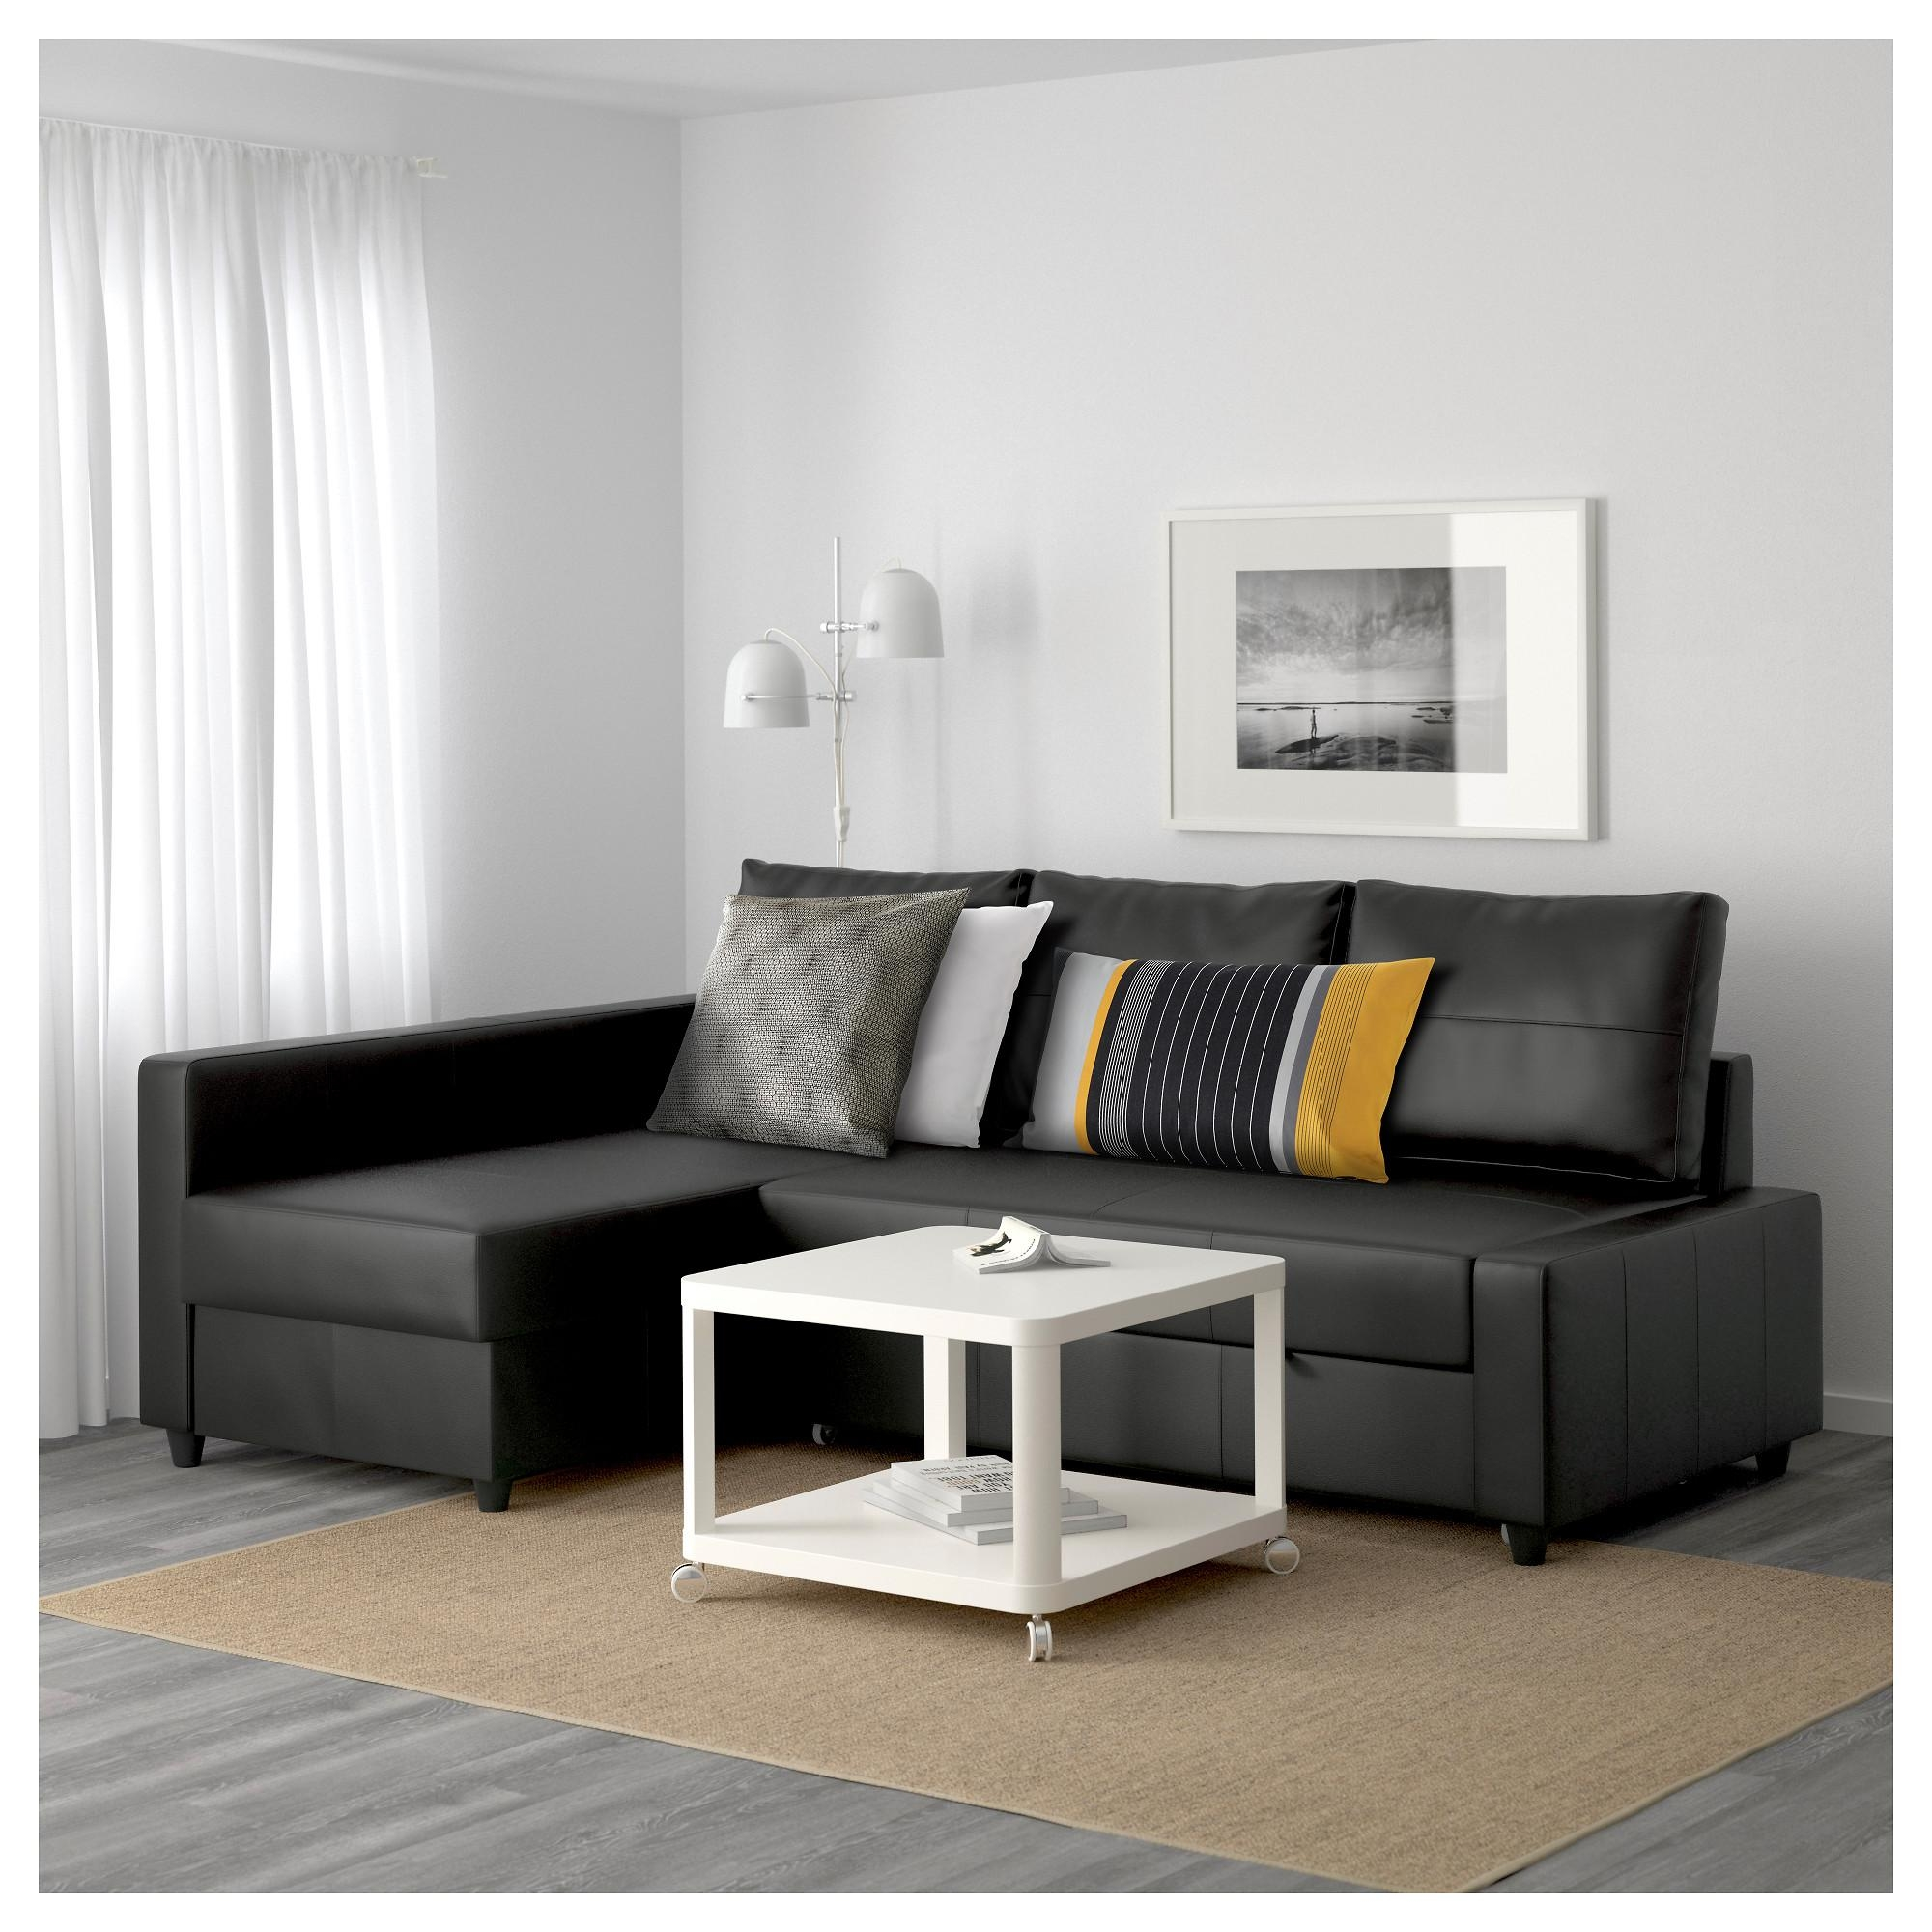 Friheten Sleeper Sectional,3 Seat W/storage – Skiftebo Dark Gray In Sleeper Sectional Sofa Ikea (Image 5 of 20)